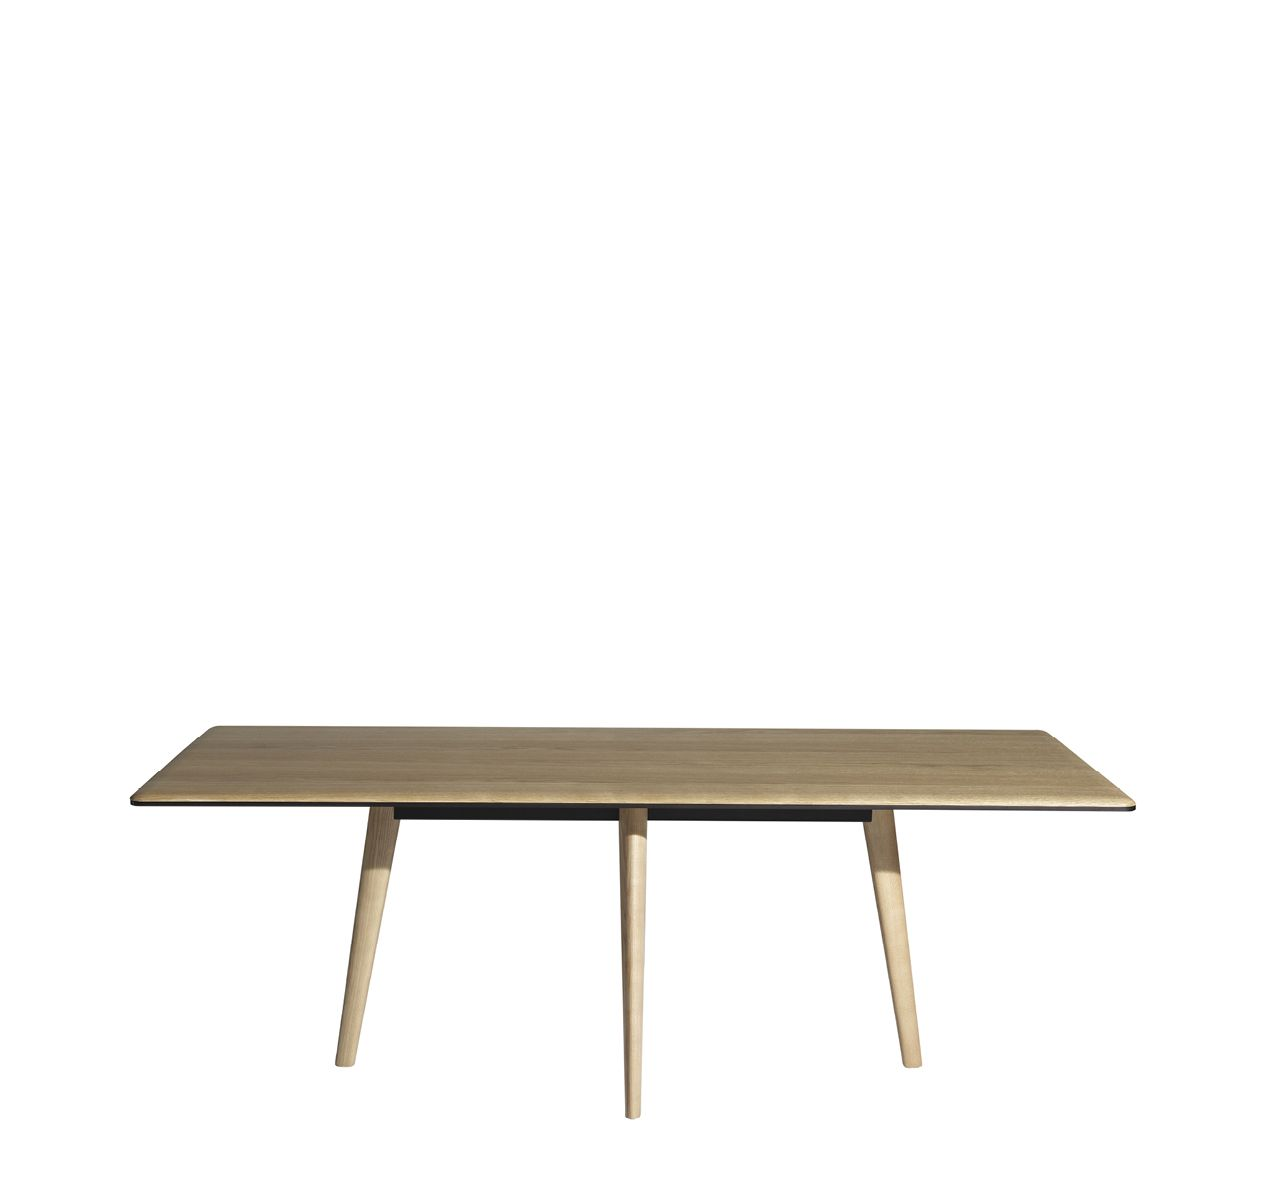 Francois Dining Table - Wood top Natural oak/ Legs in ash with natural oak finish, 210